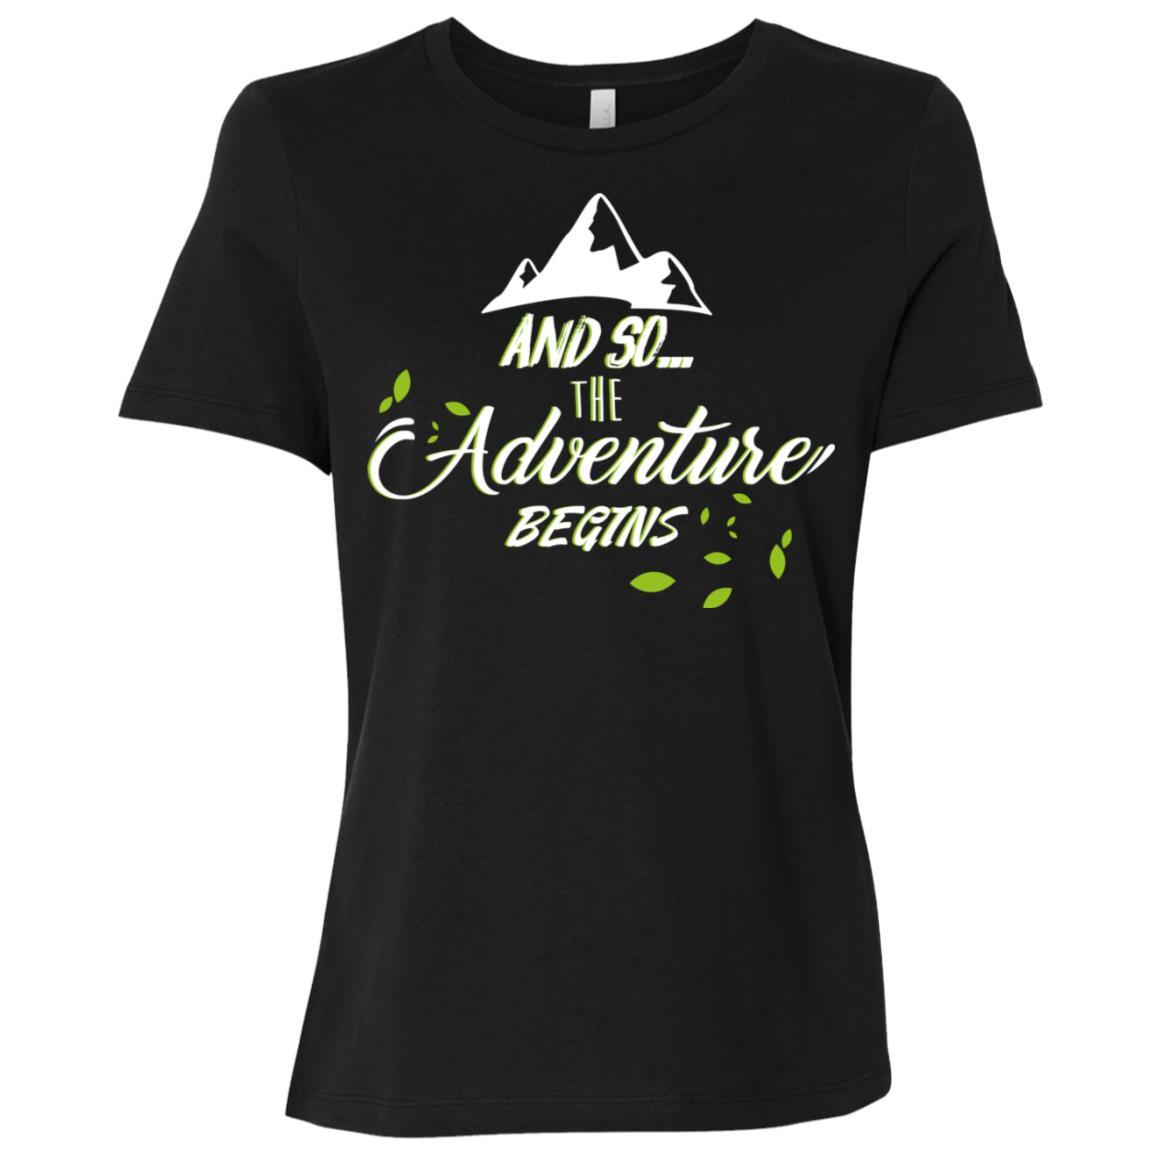 And So The Adventure Begins Women Short Sleeve T-Shirt